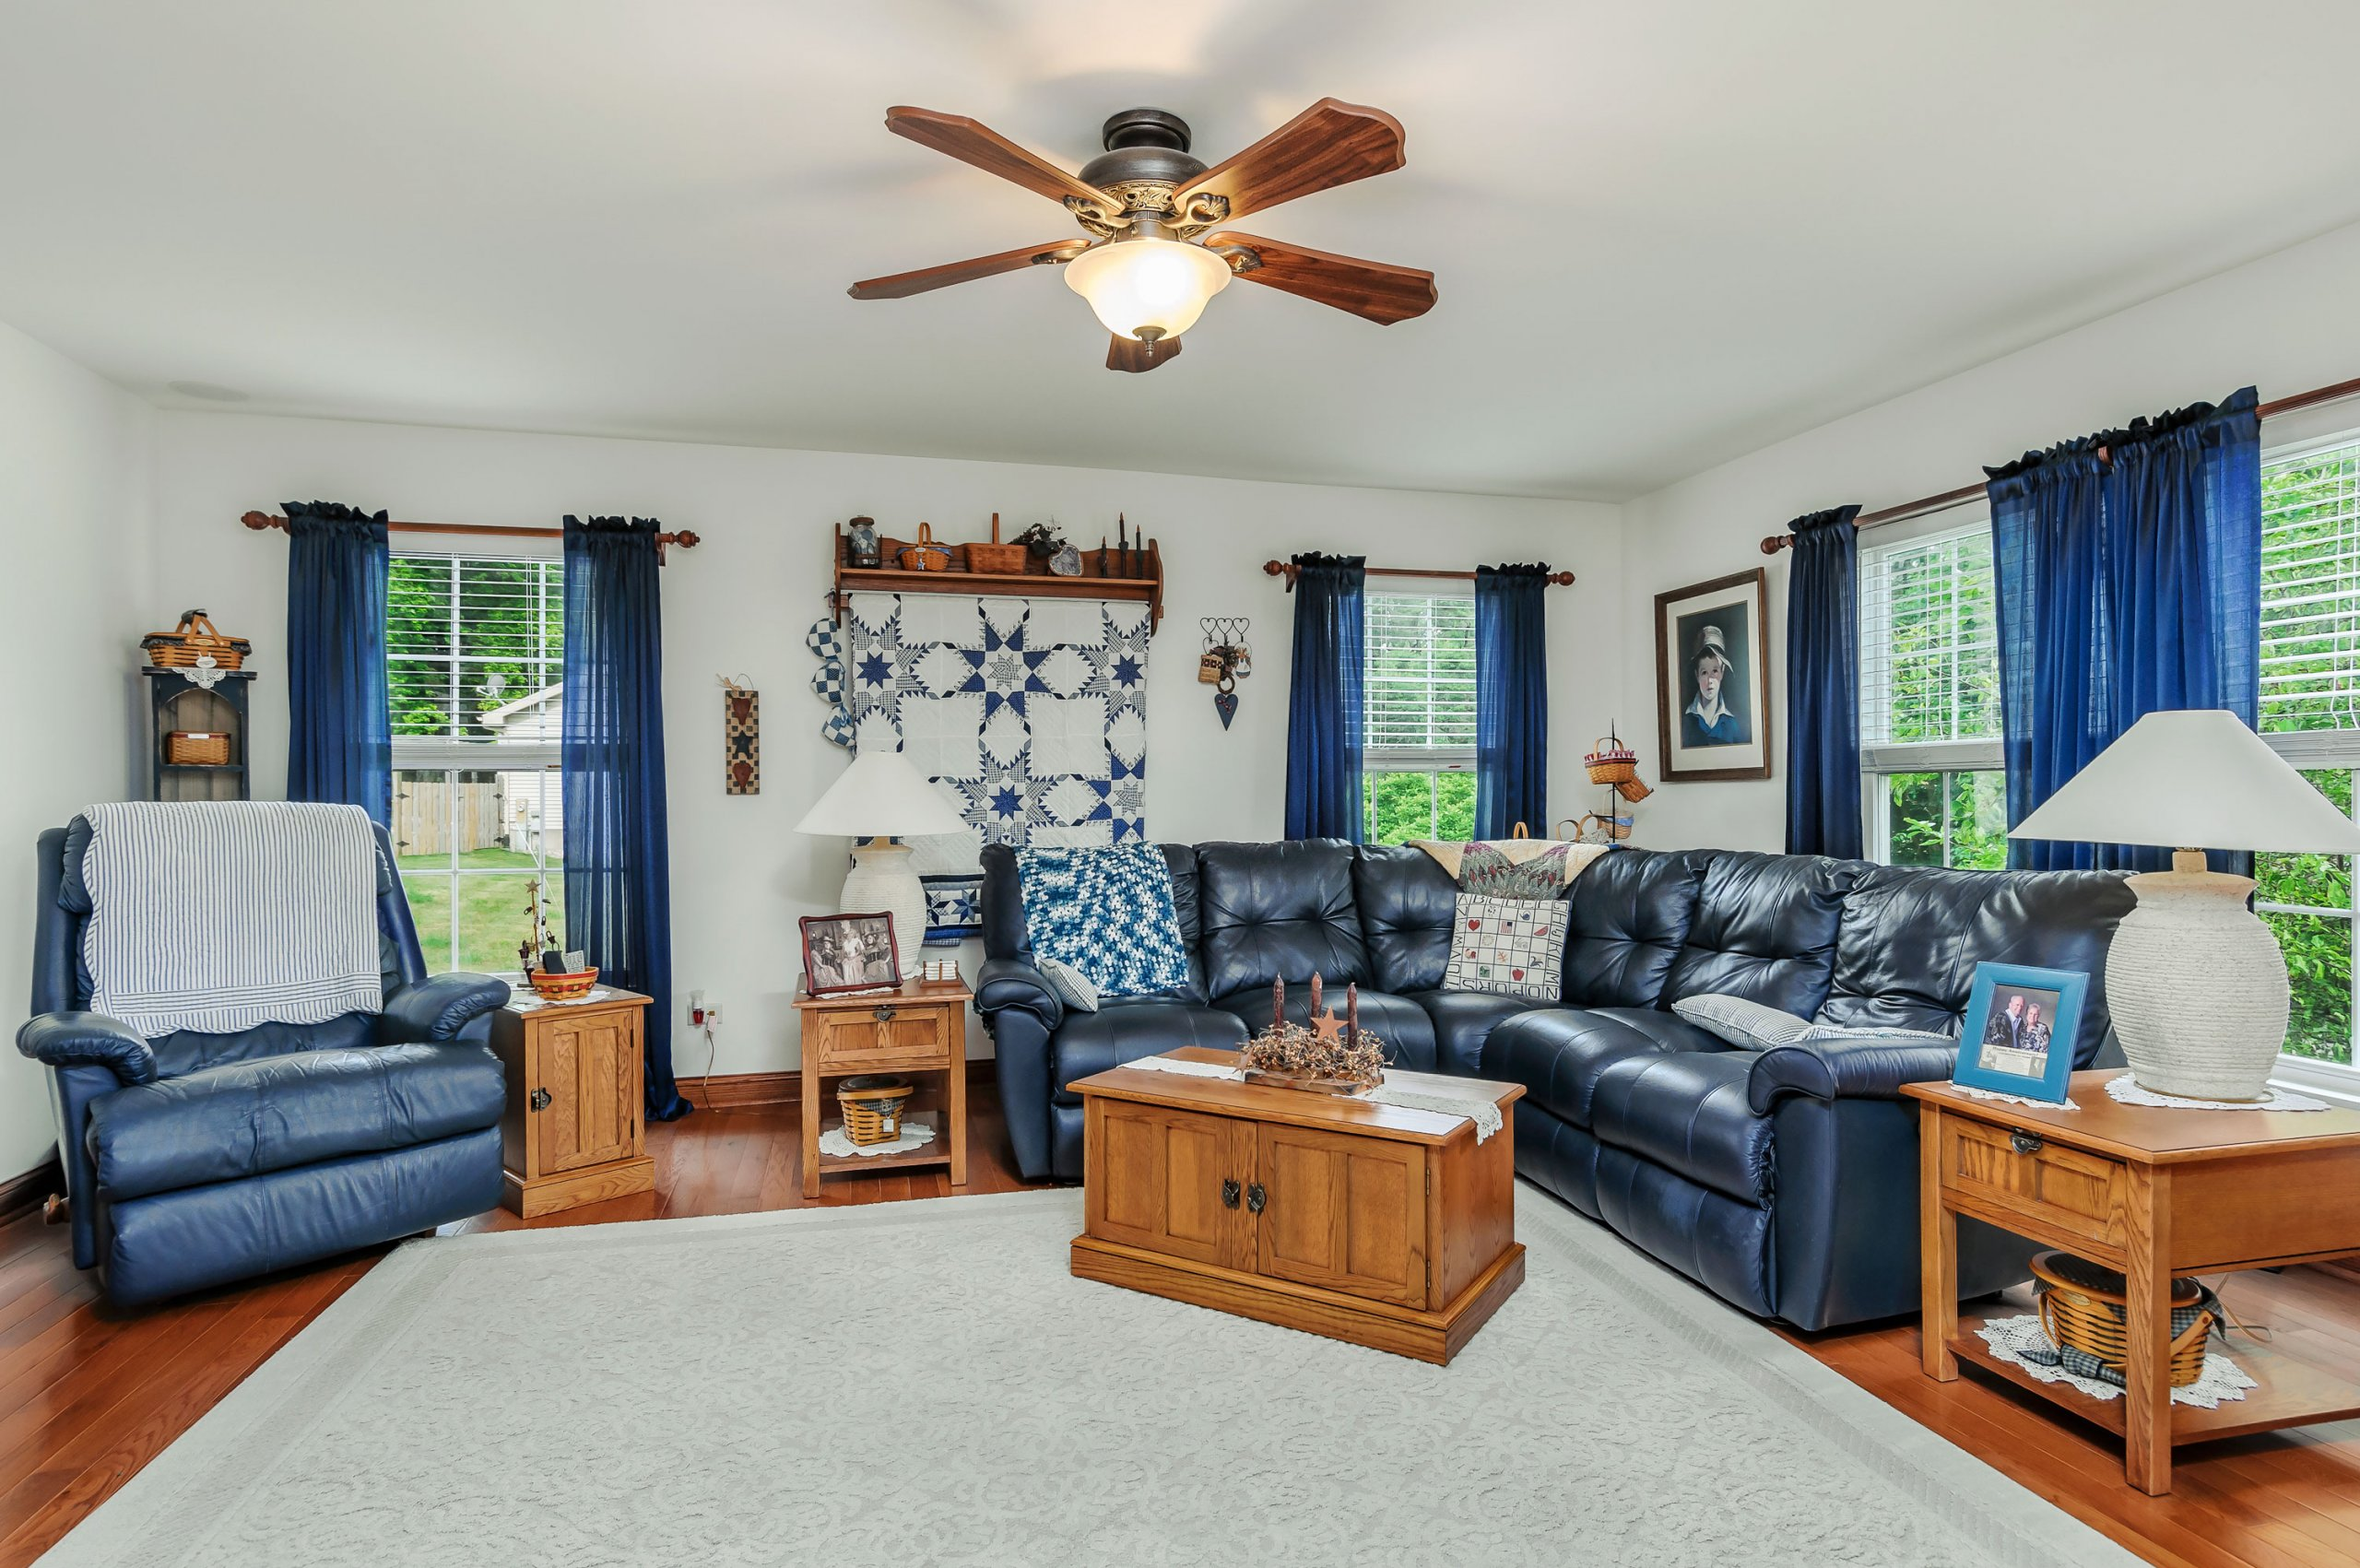 Elegant blue themed living room in Lake Holiday, Illinois.